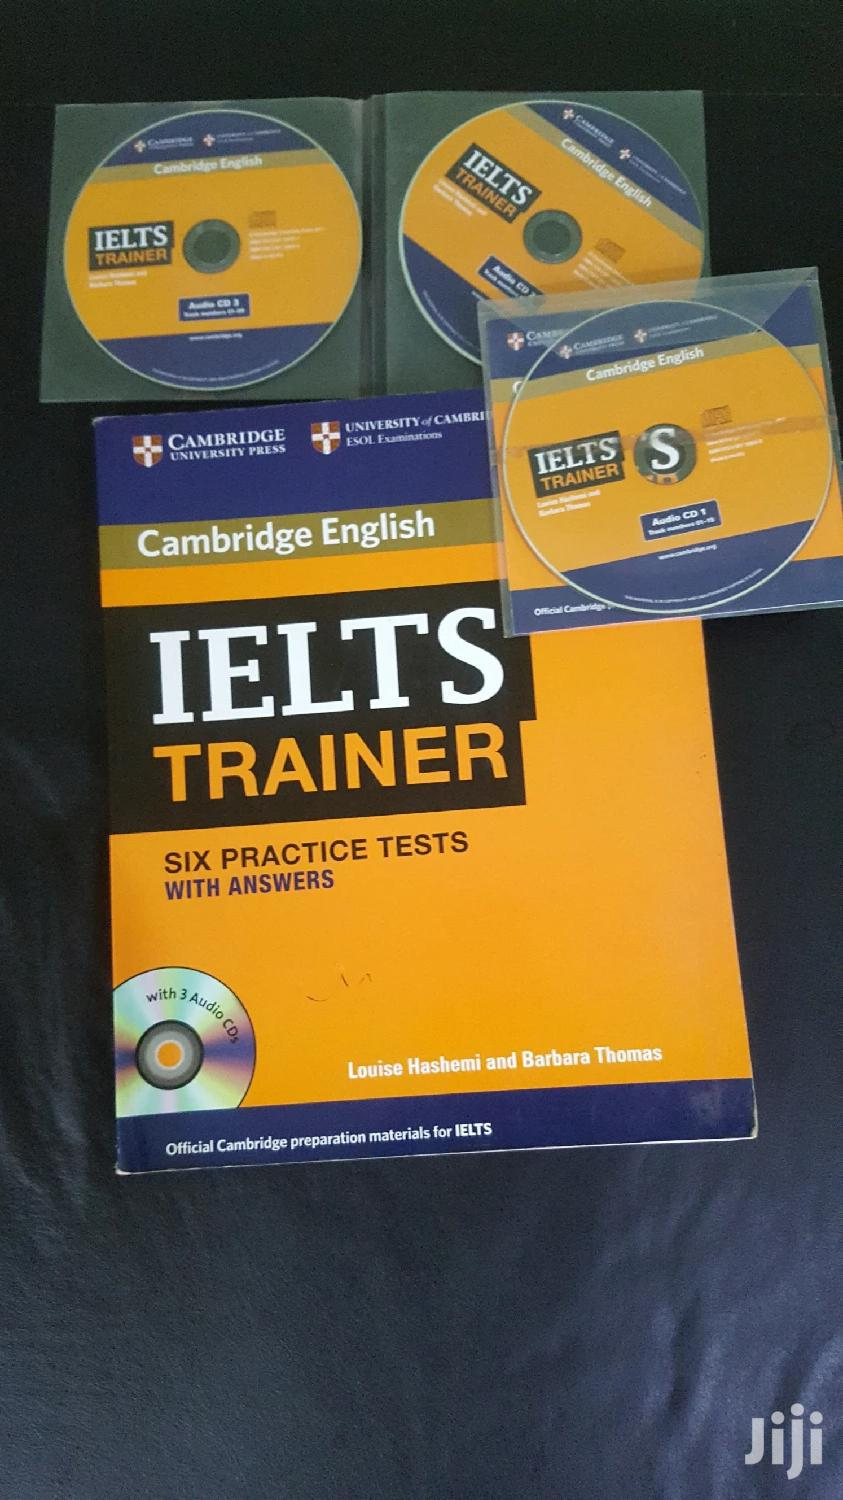 Archive: Ielts Books / Learning Materials